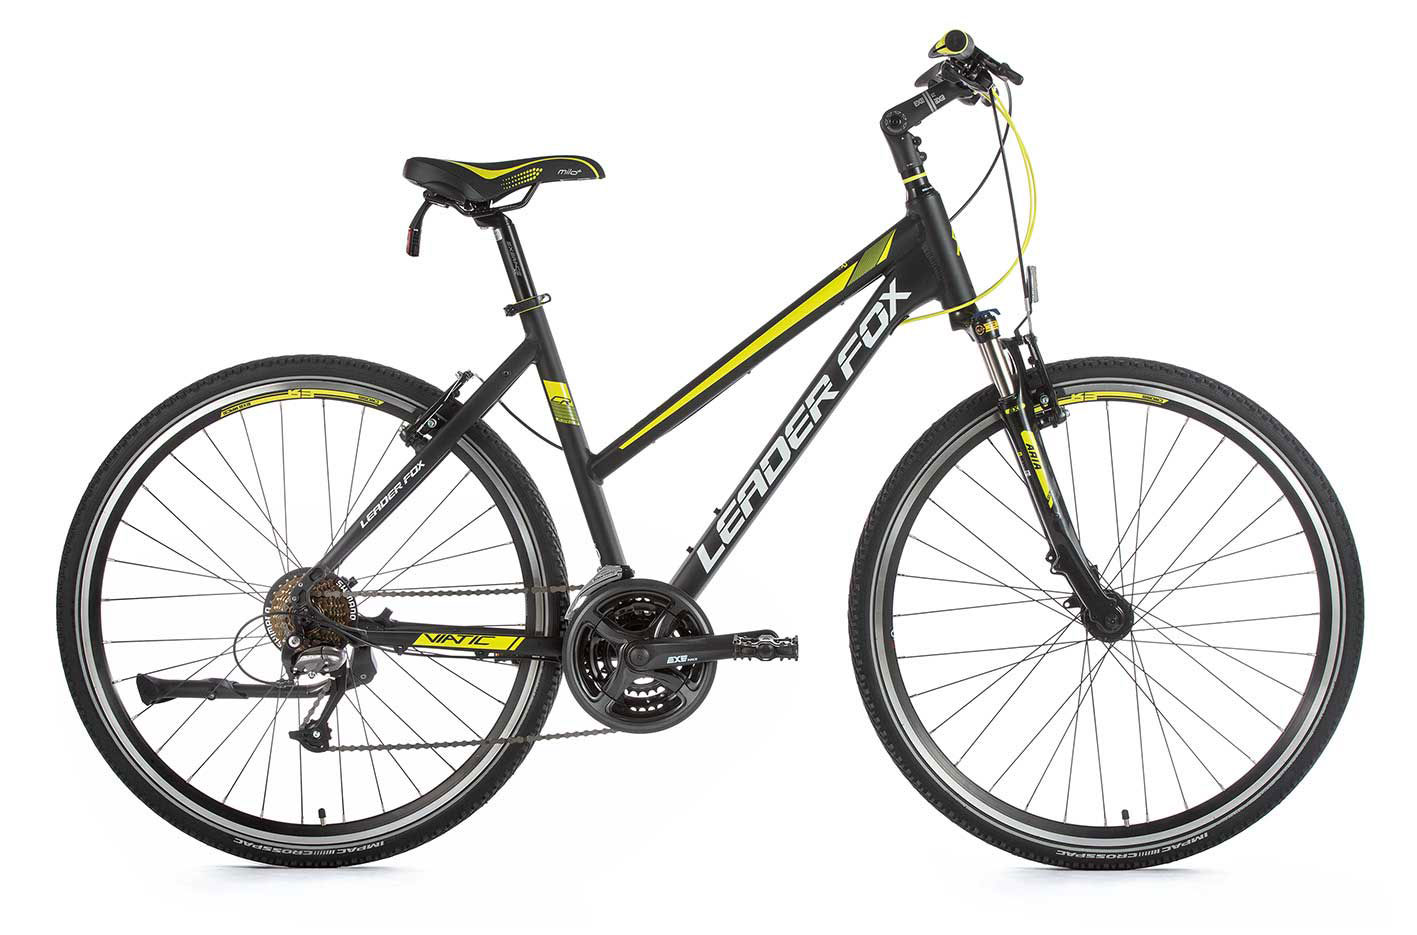 Bicicleta de cross Leader Fox Viatic Lady